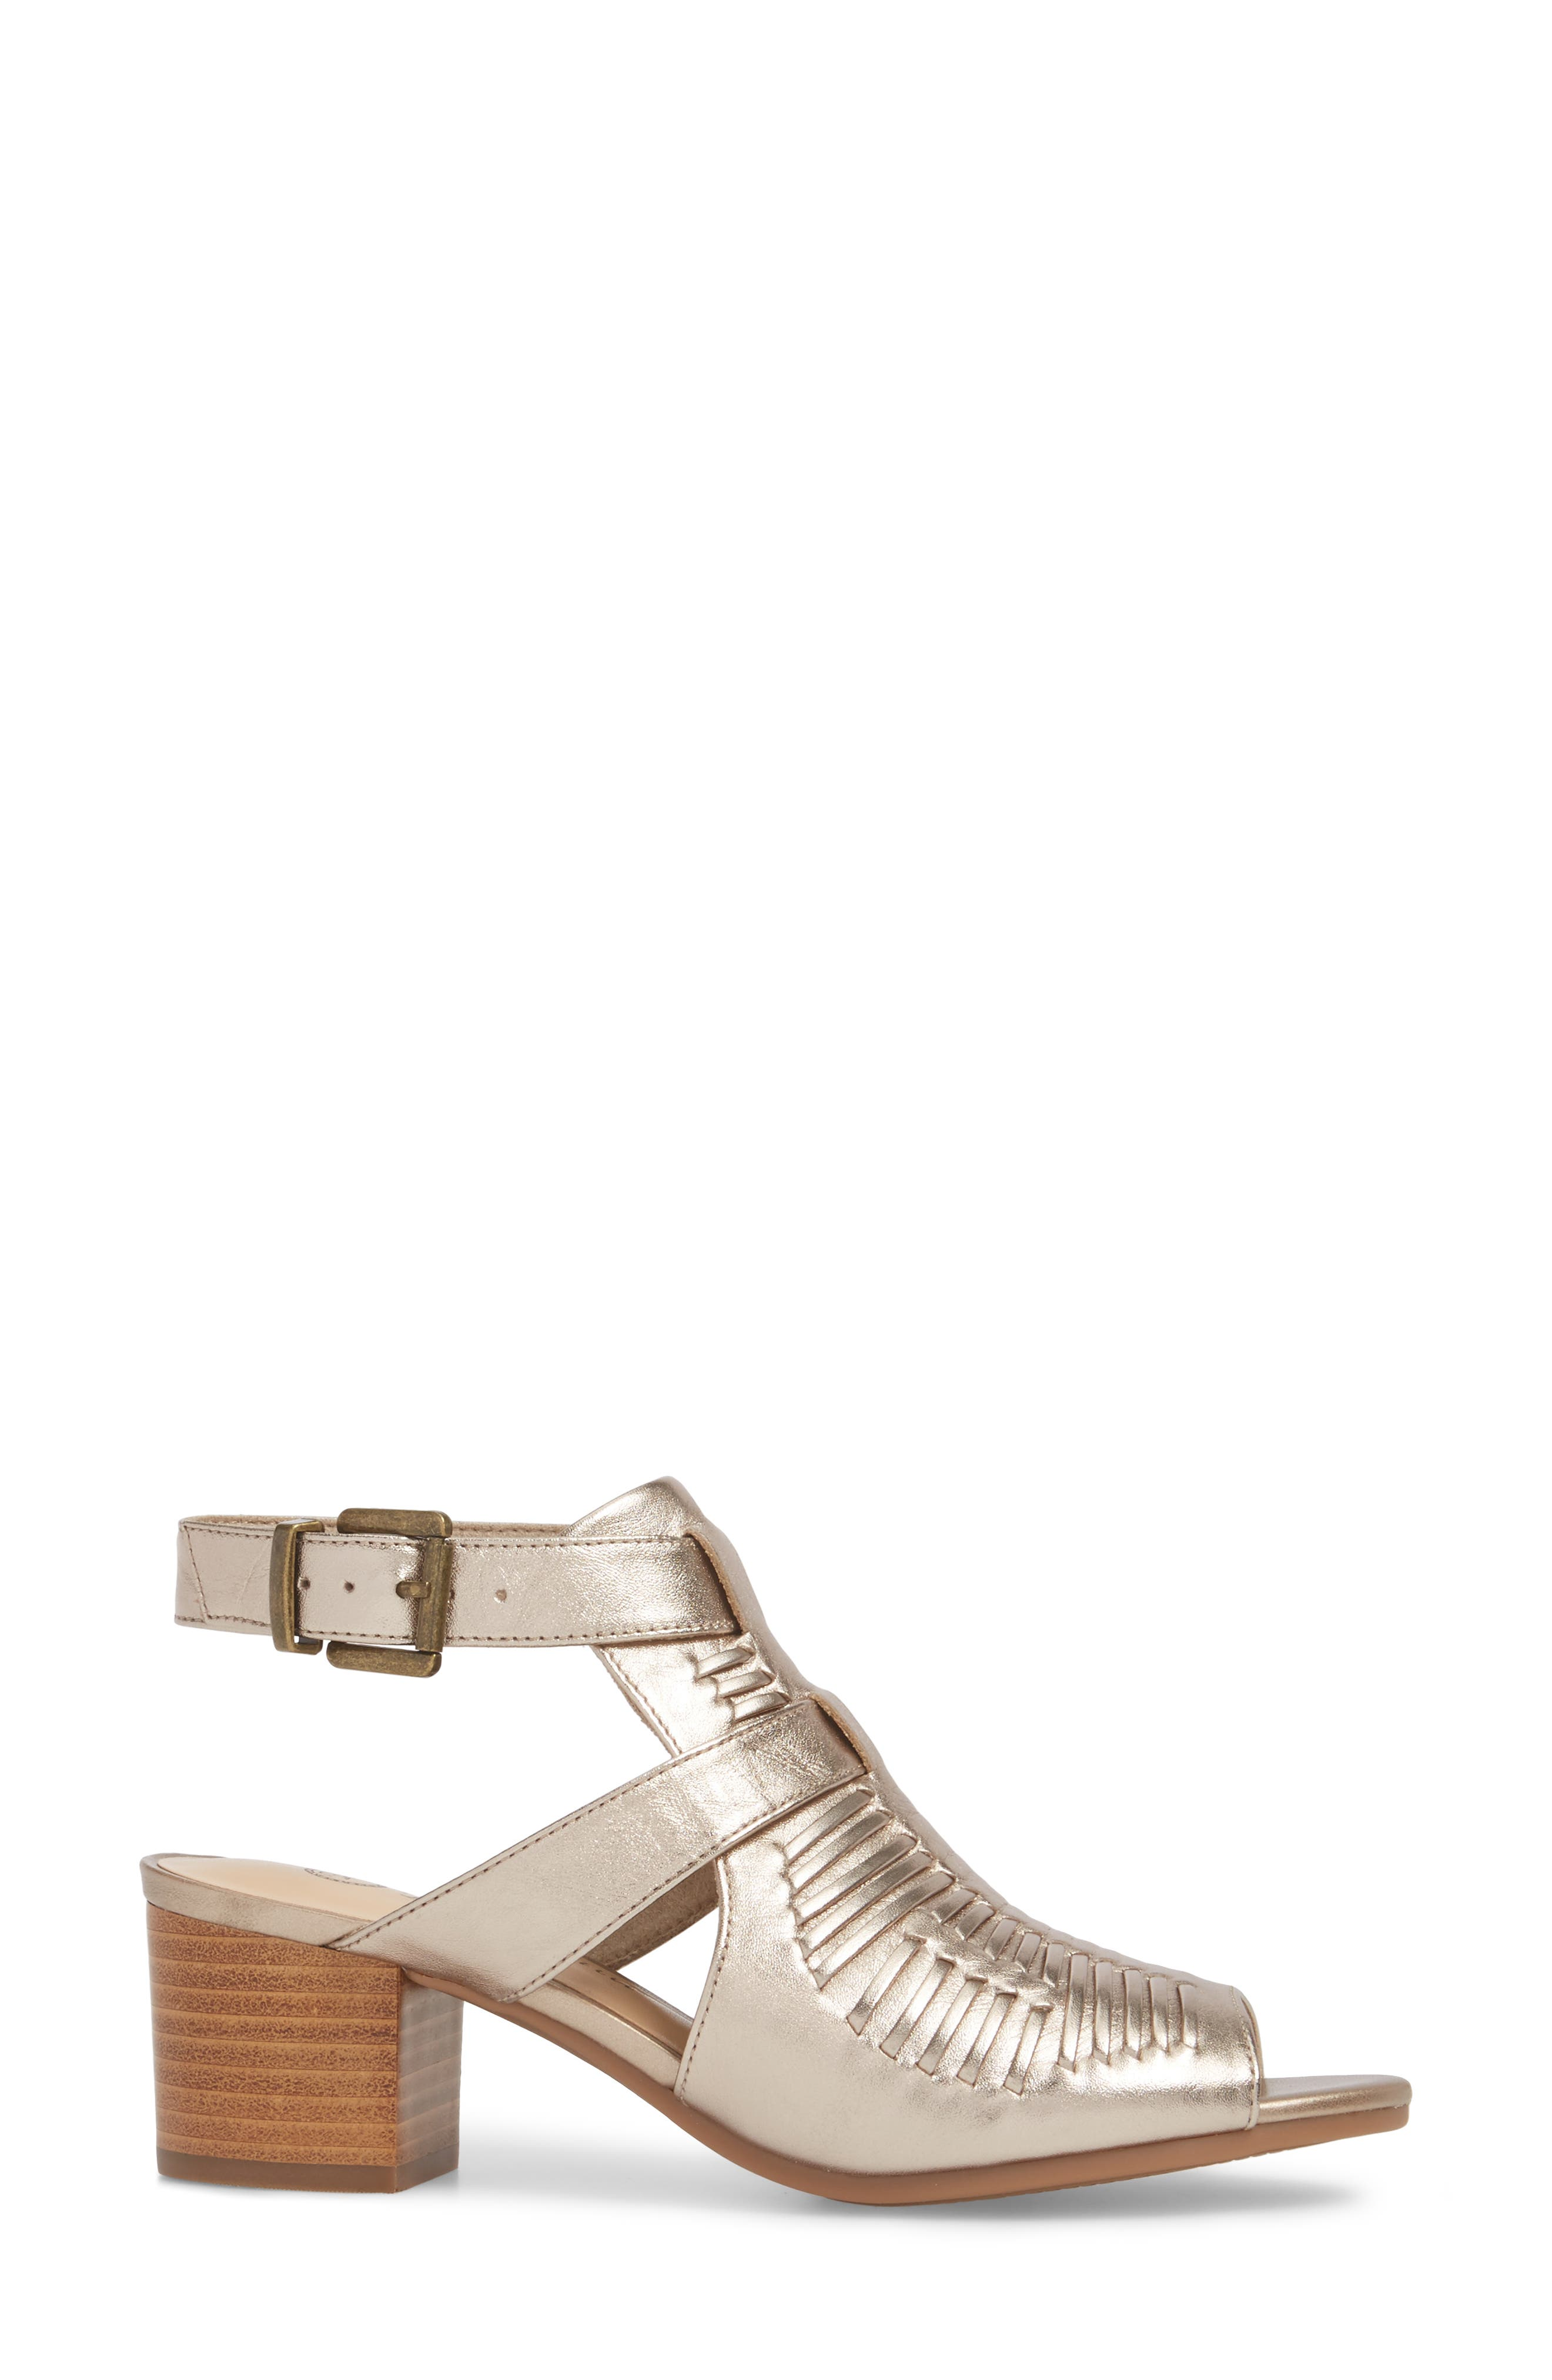 Finley Ankle Strap Sandal,                             Alternate thumbnail 3, color,                             Champagne Fabric